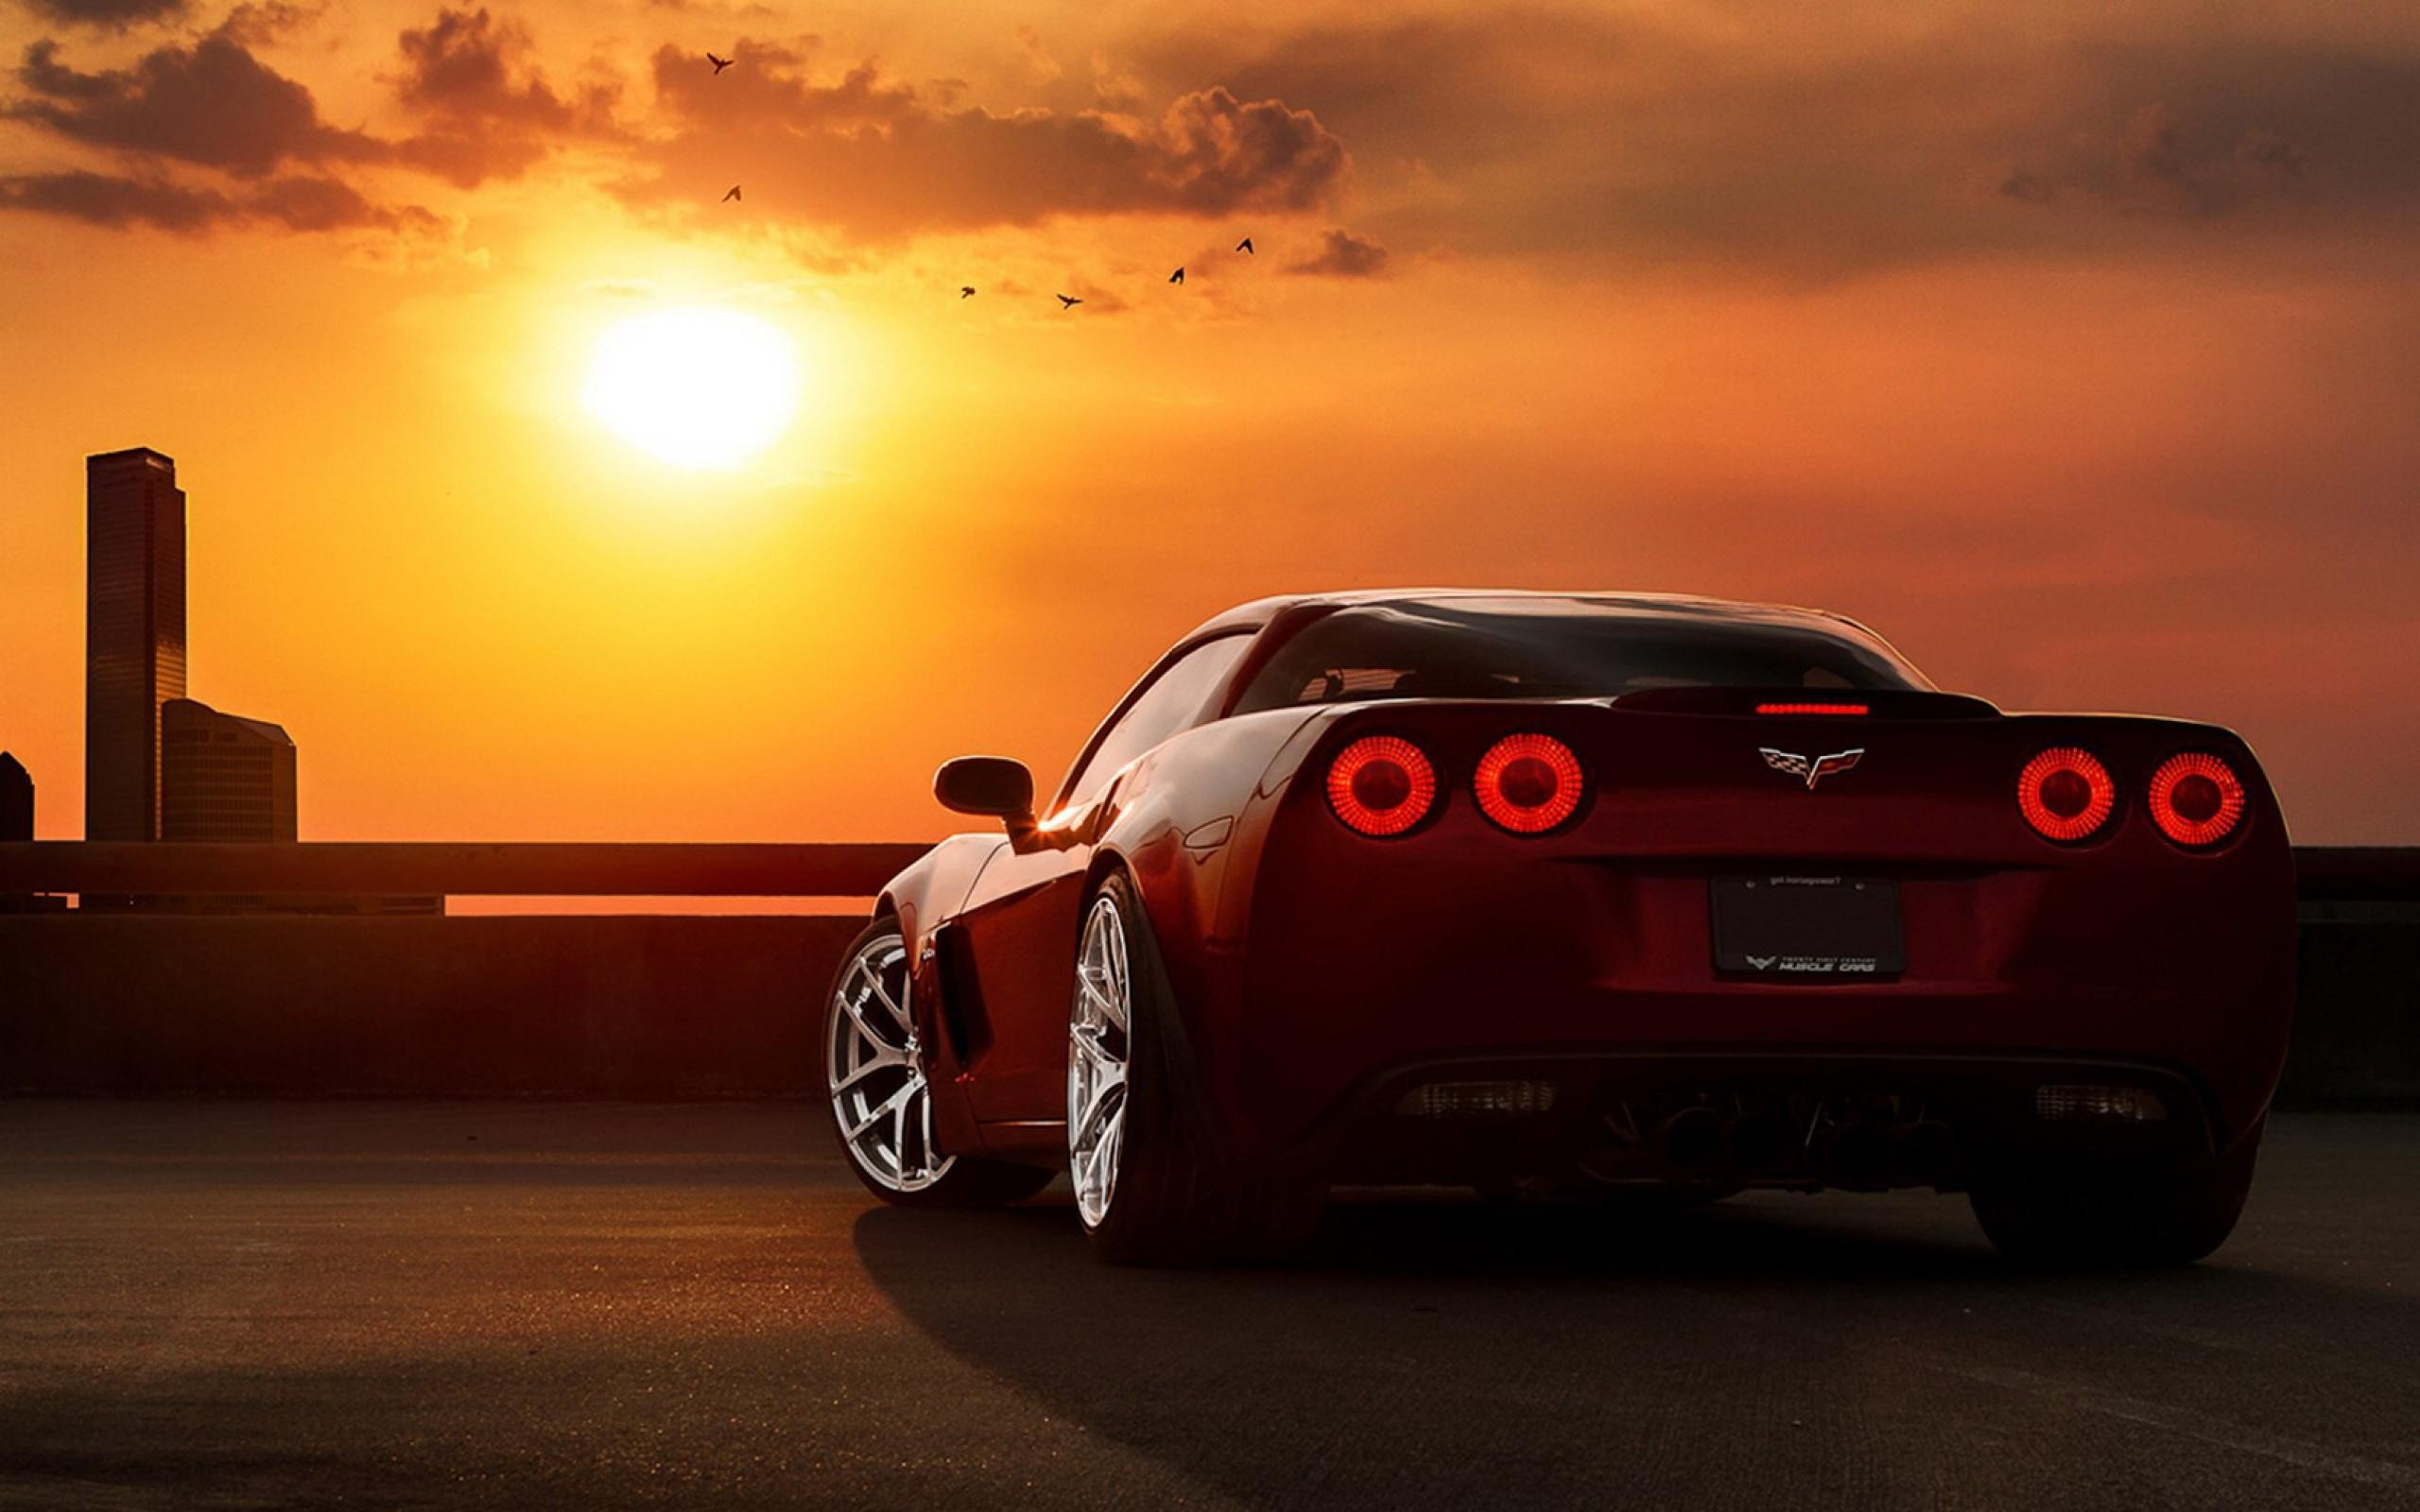 Clouds Supercars Chevrolet Corvette Red Cars Z06 Cities Taillights Wallpaper